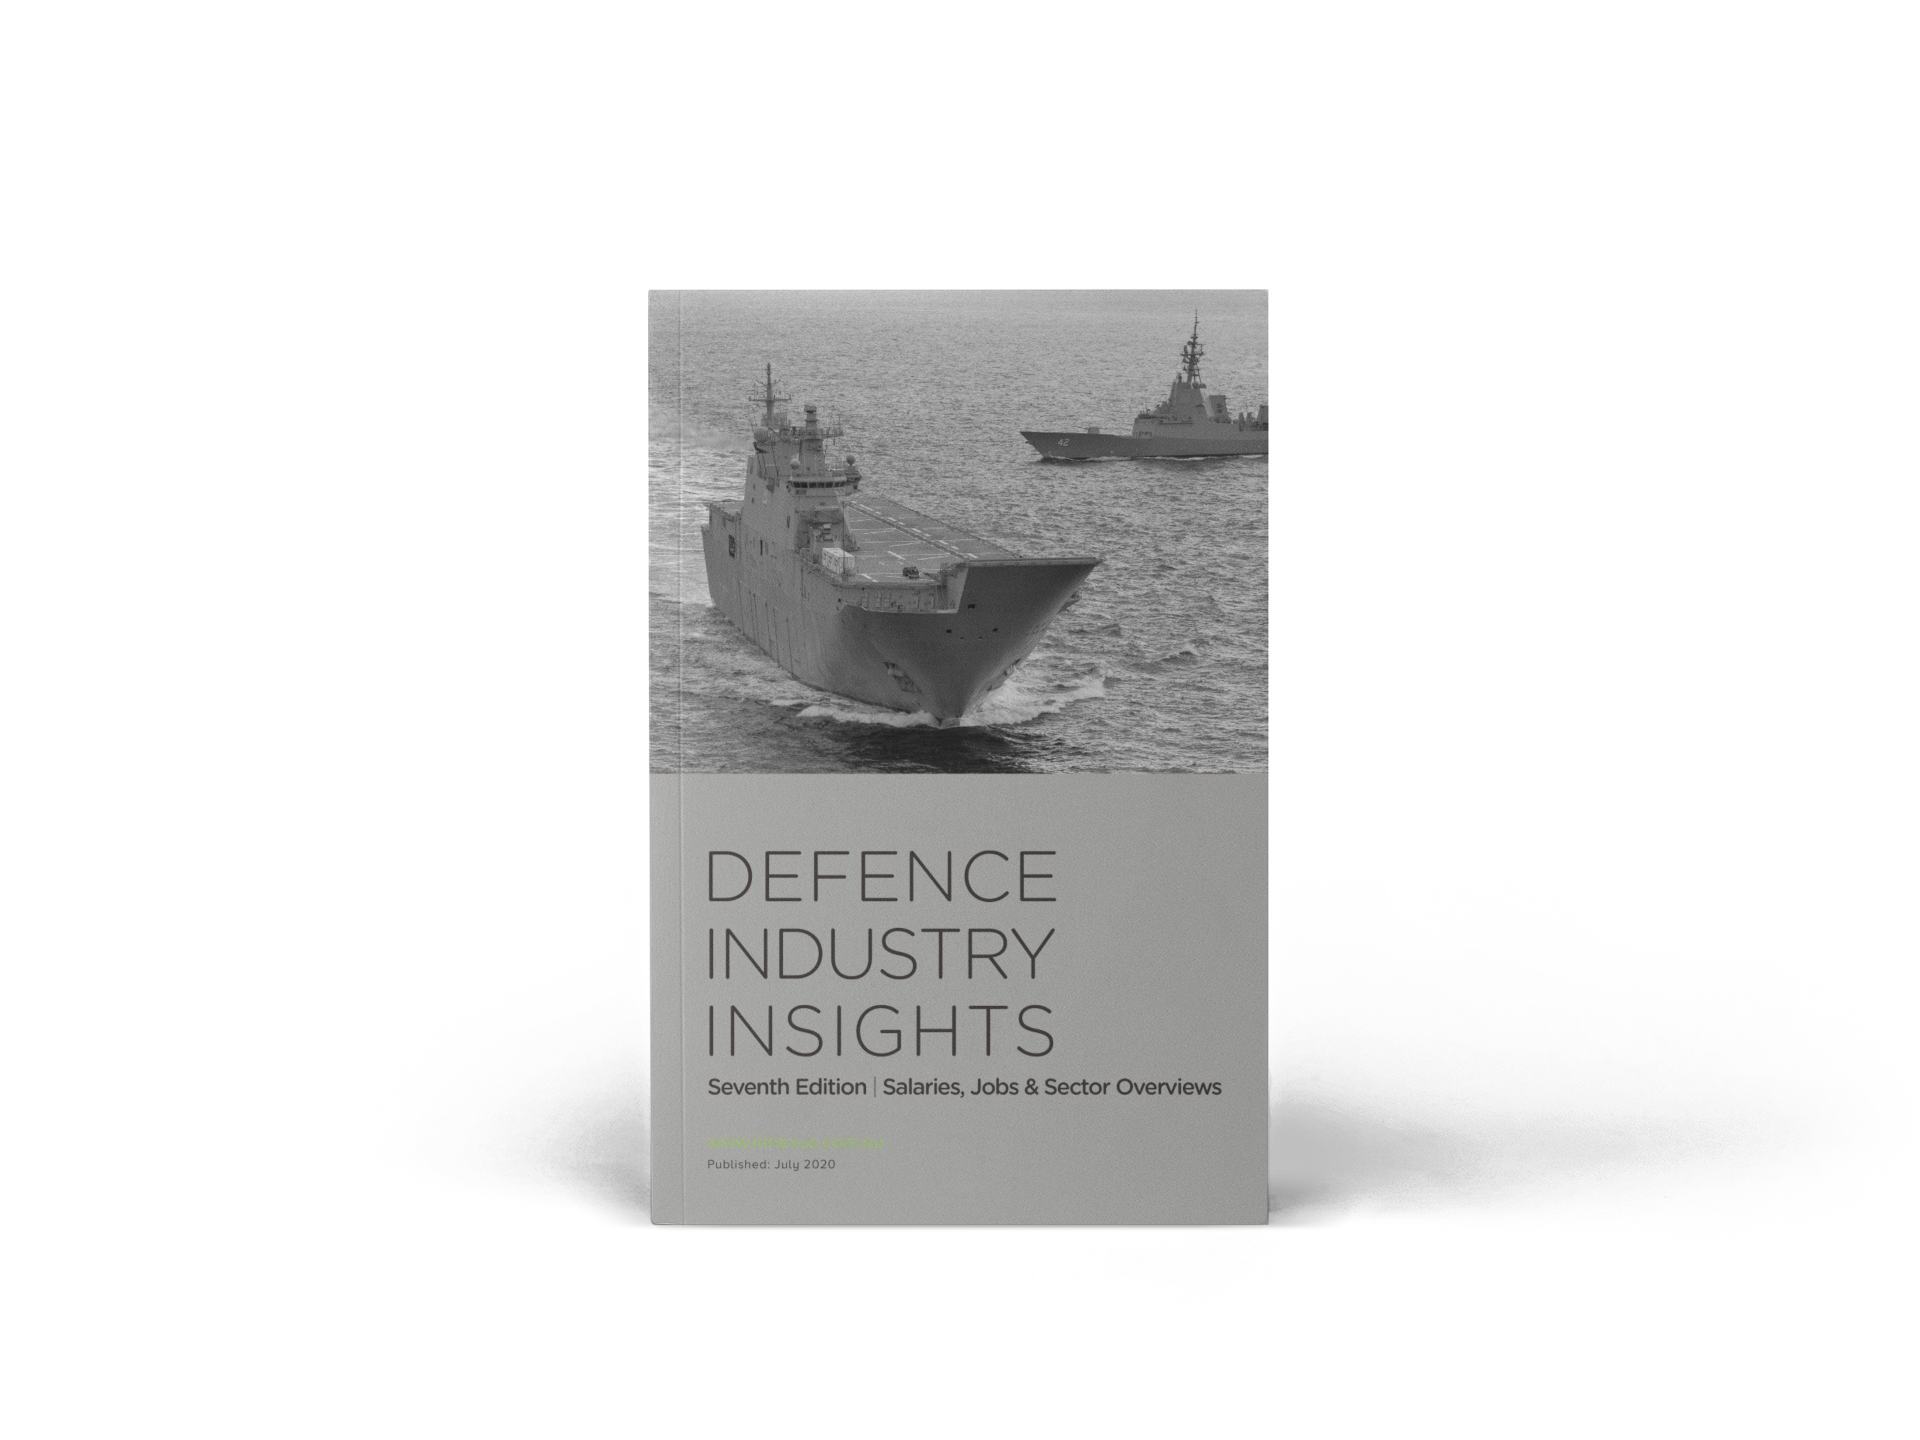 Defence Industry Insights - 7th Edition